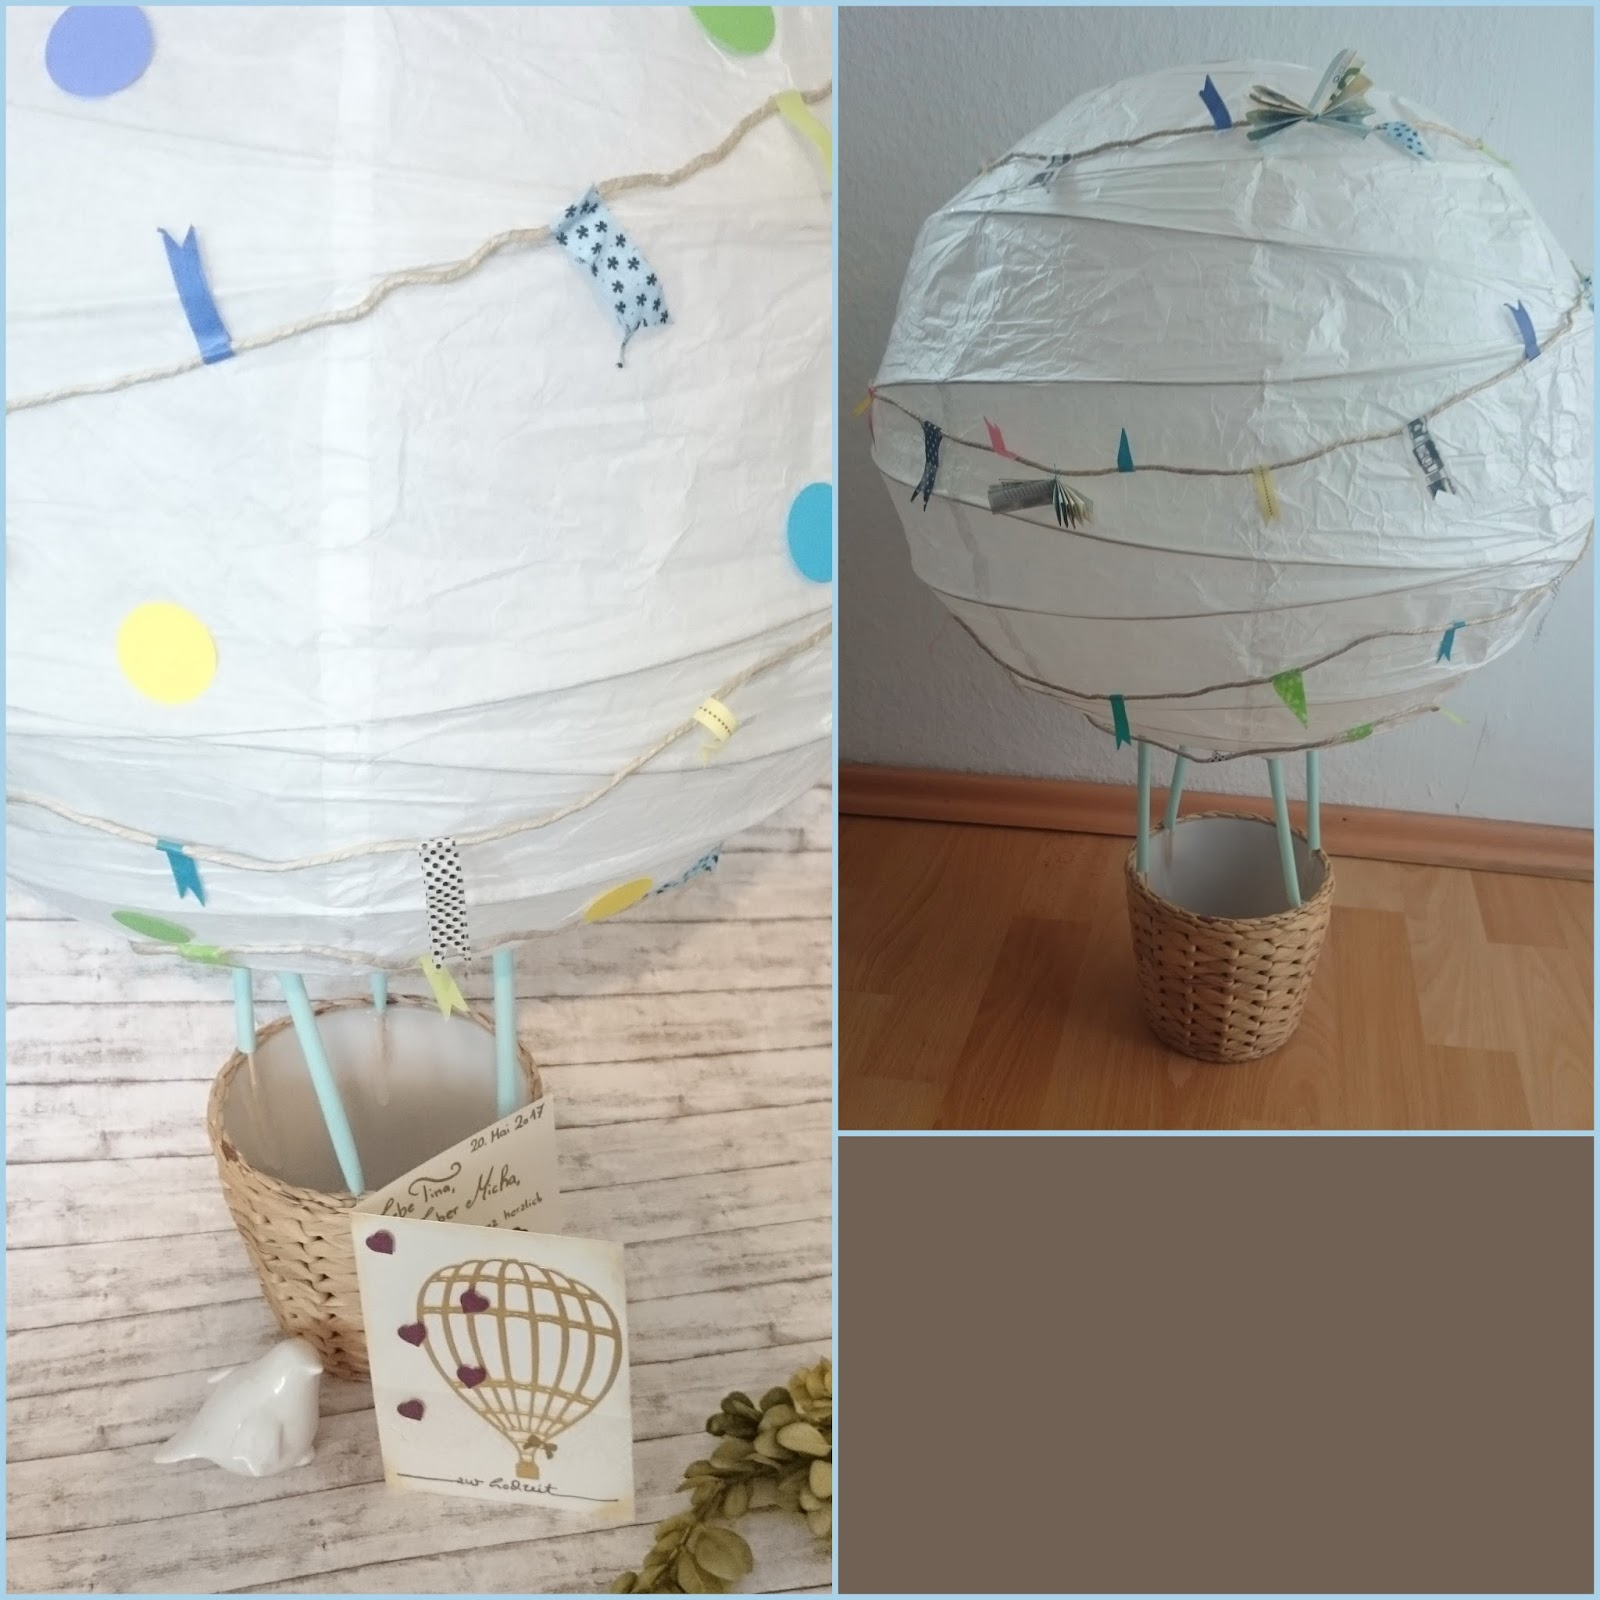 lucciola diy wedding hot air balloon gift of money hochzeits hei luftballon als geldgeschenk. Black Bedroom Furniture Sets. Home Design Ideas